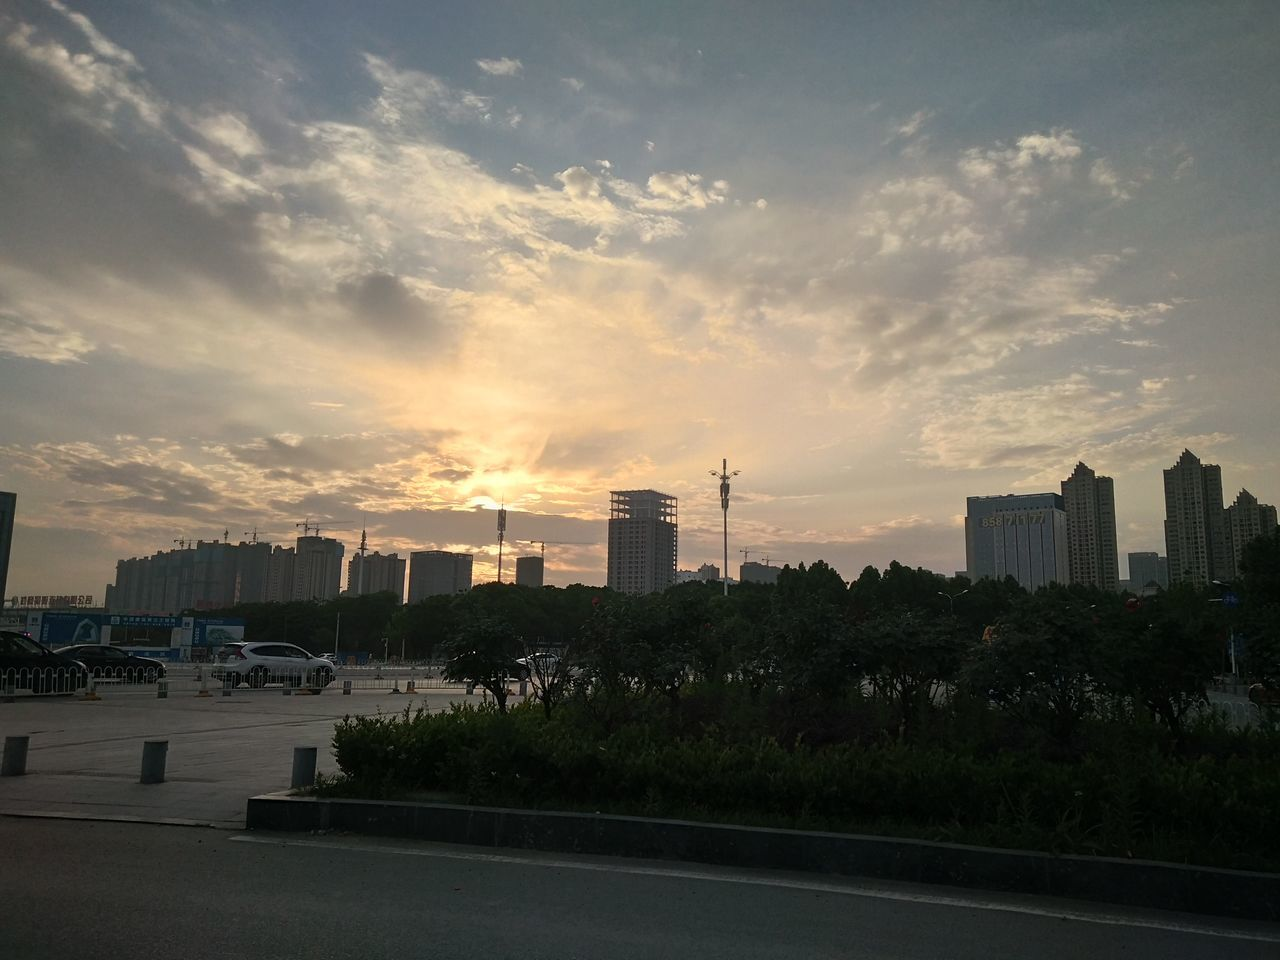 architecture, building exterior, city, sky, sunset, built structure, cloud - sky, skyscraper, modern, cityscape, growth, urban skyline, travel destinations, no people, city life, outdoors, tree, nature, day